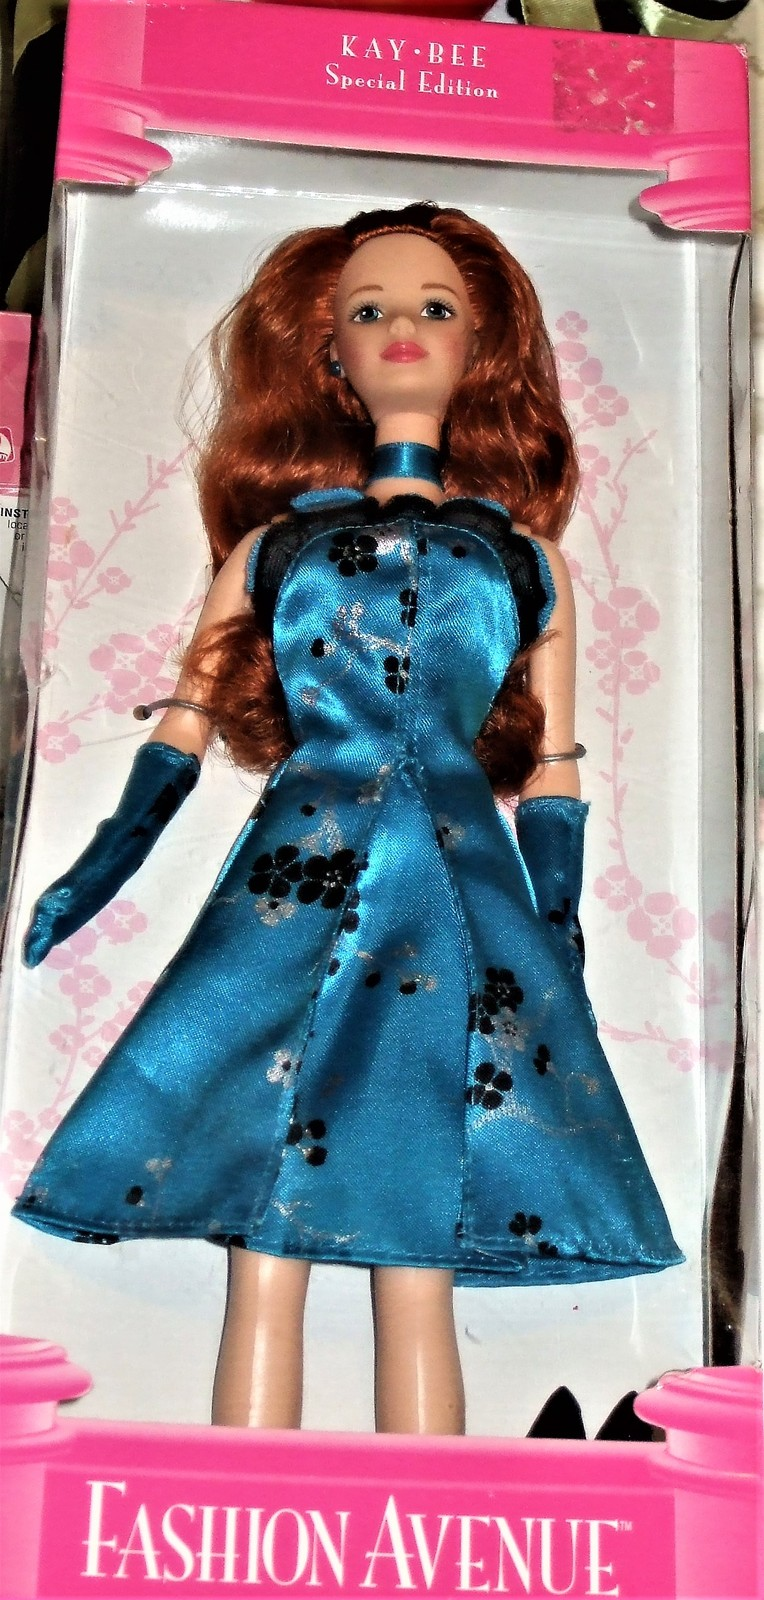 Barbie Doll - FASHION AVENUE Kay-Bee Special Ed (1998) Long Red Hair image 6